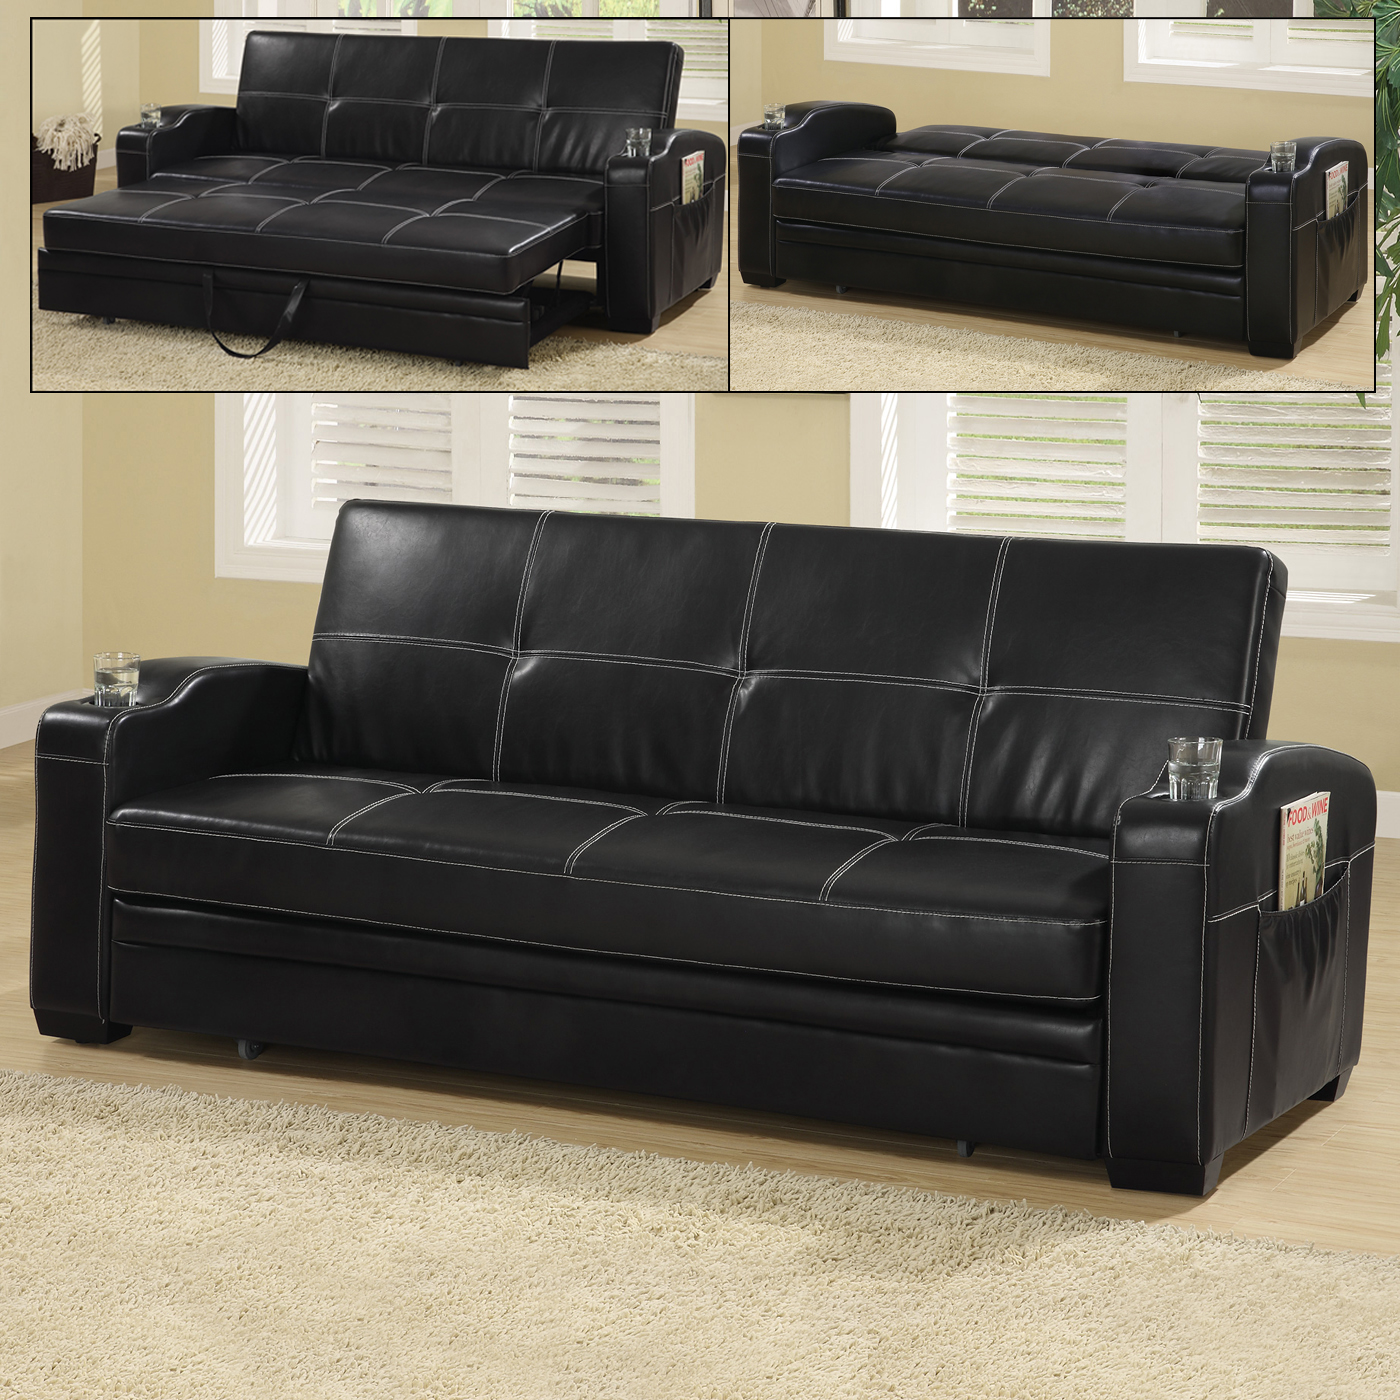 leather sofas chicago area french style linen sofa faux bed with storage and cup holders